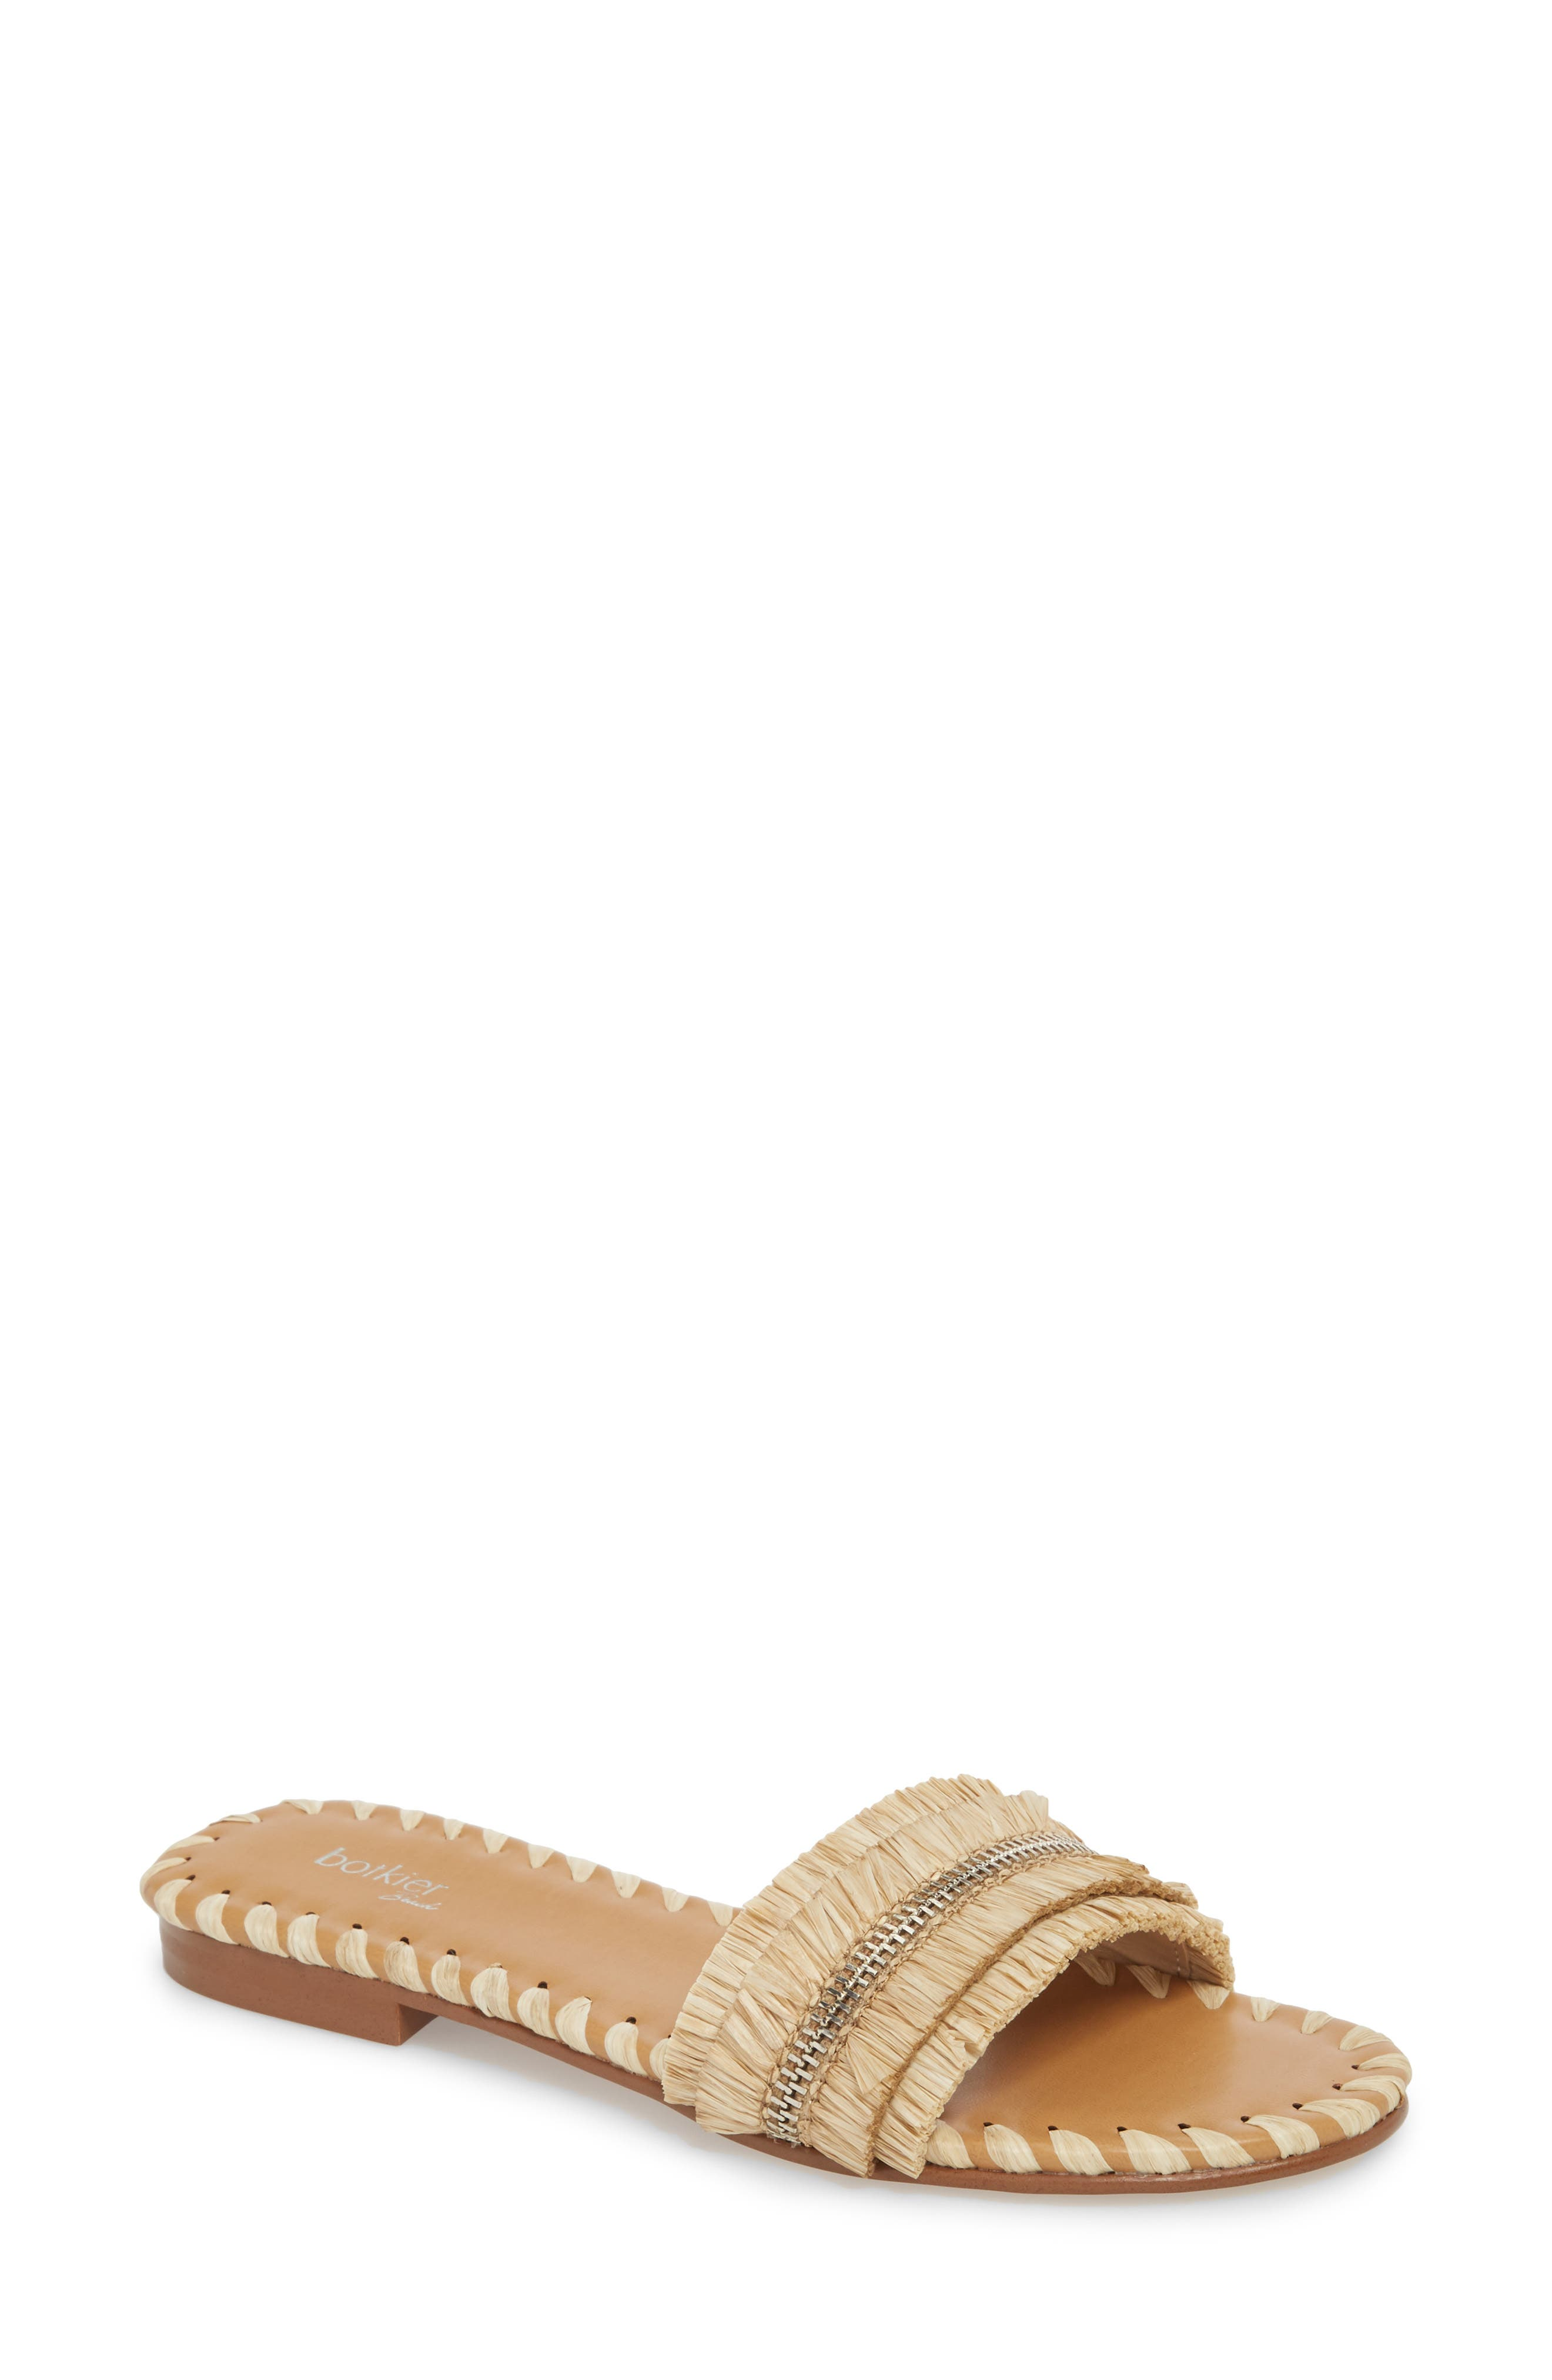 Botkier Bonnie Slide Sandal (Women)